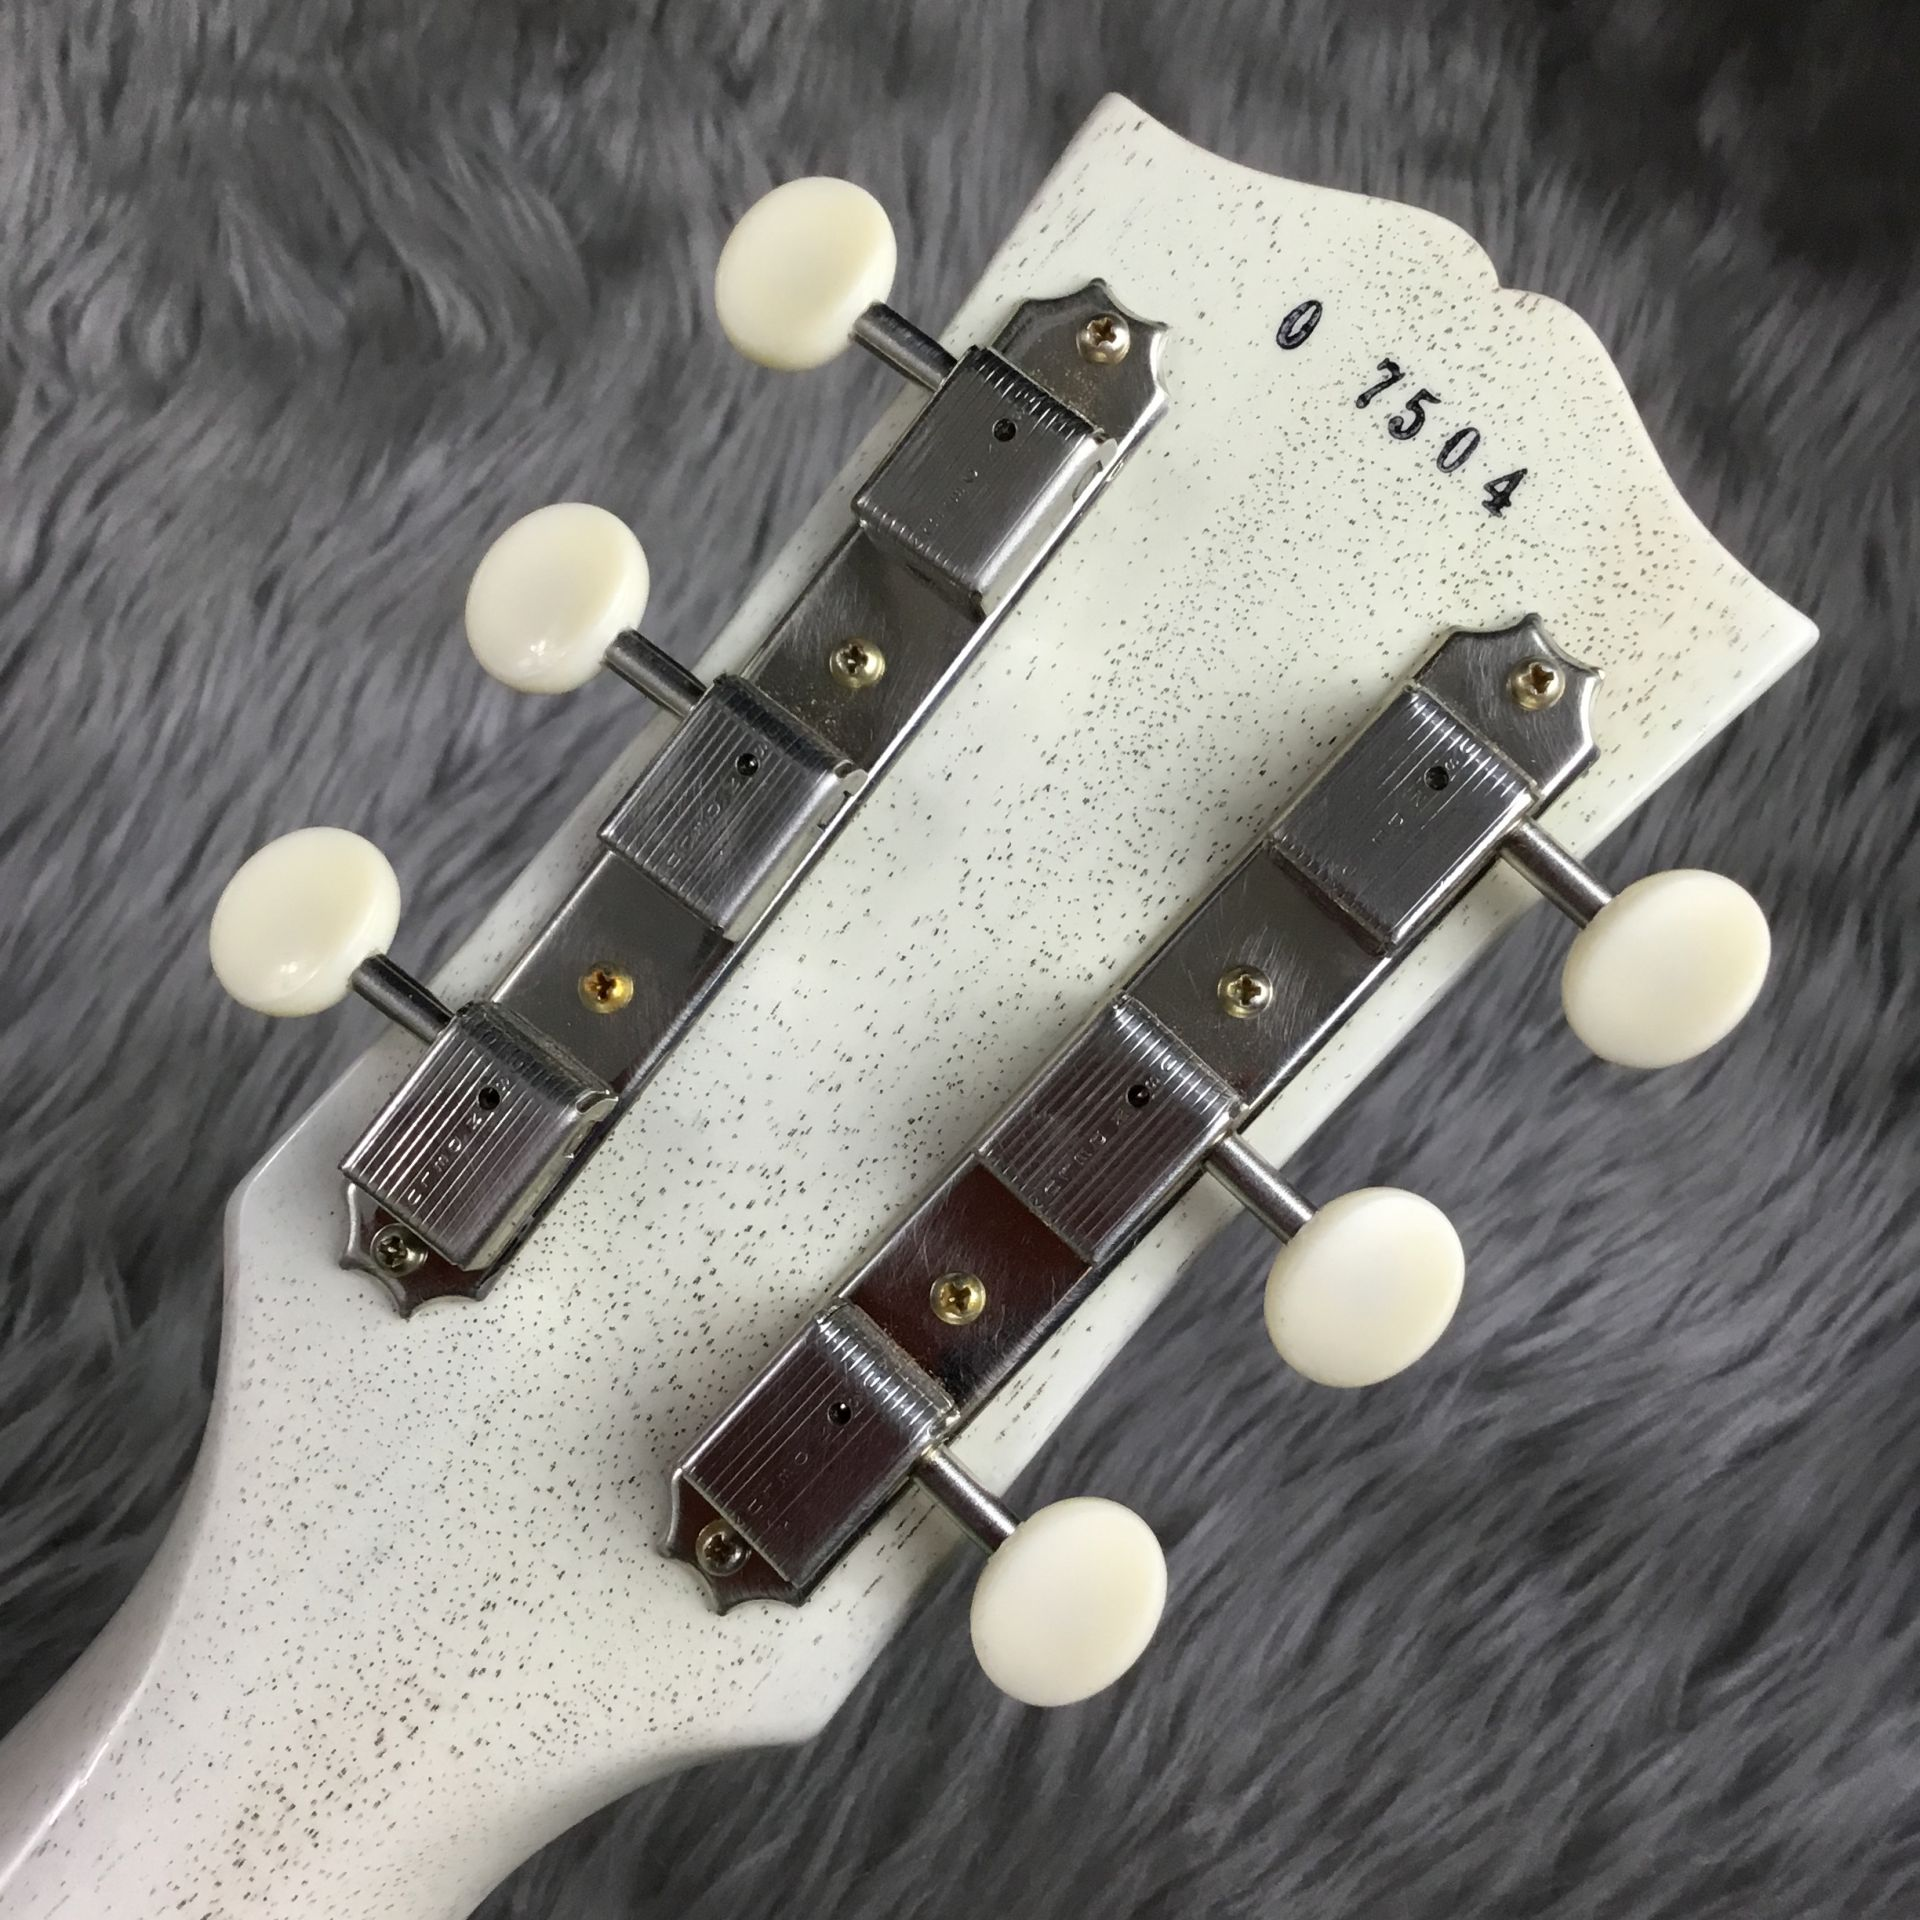 1960 Les Paul Special SC VOS TV Whiteのケース・その他画像